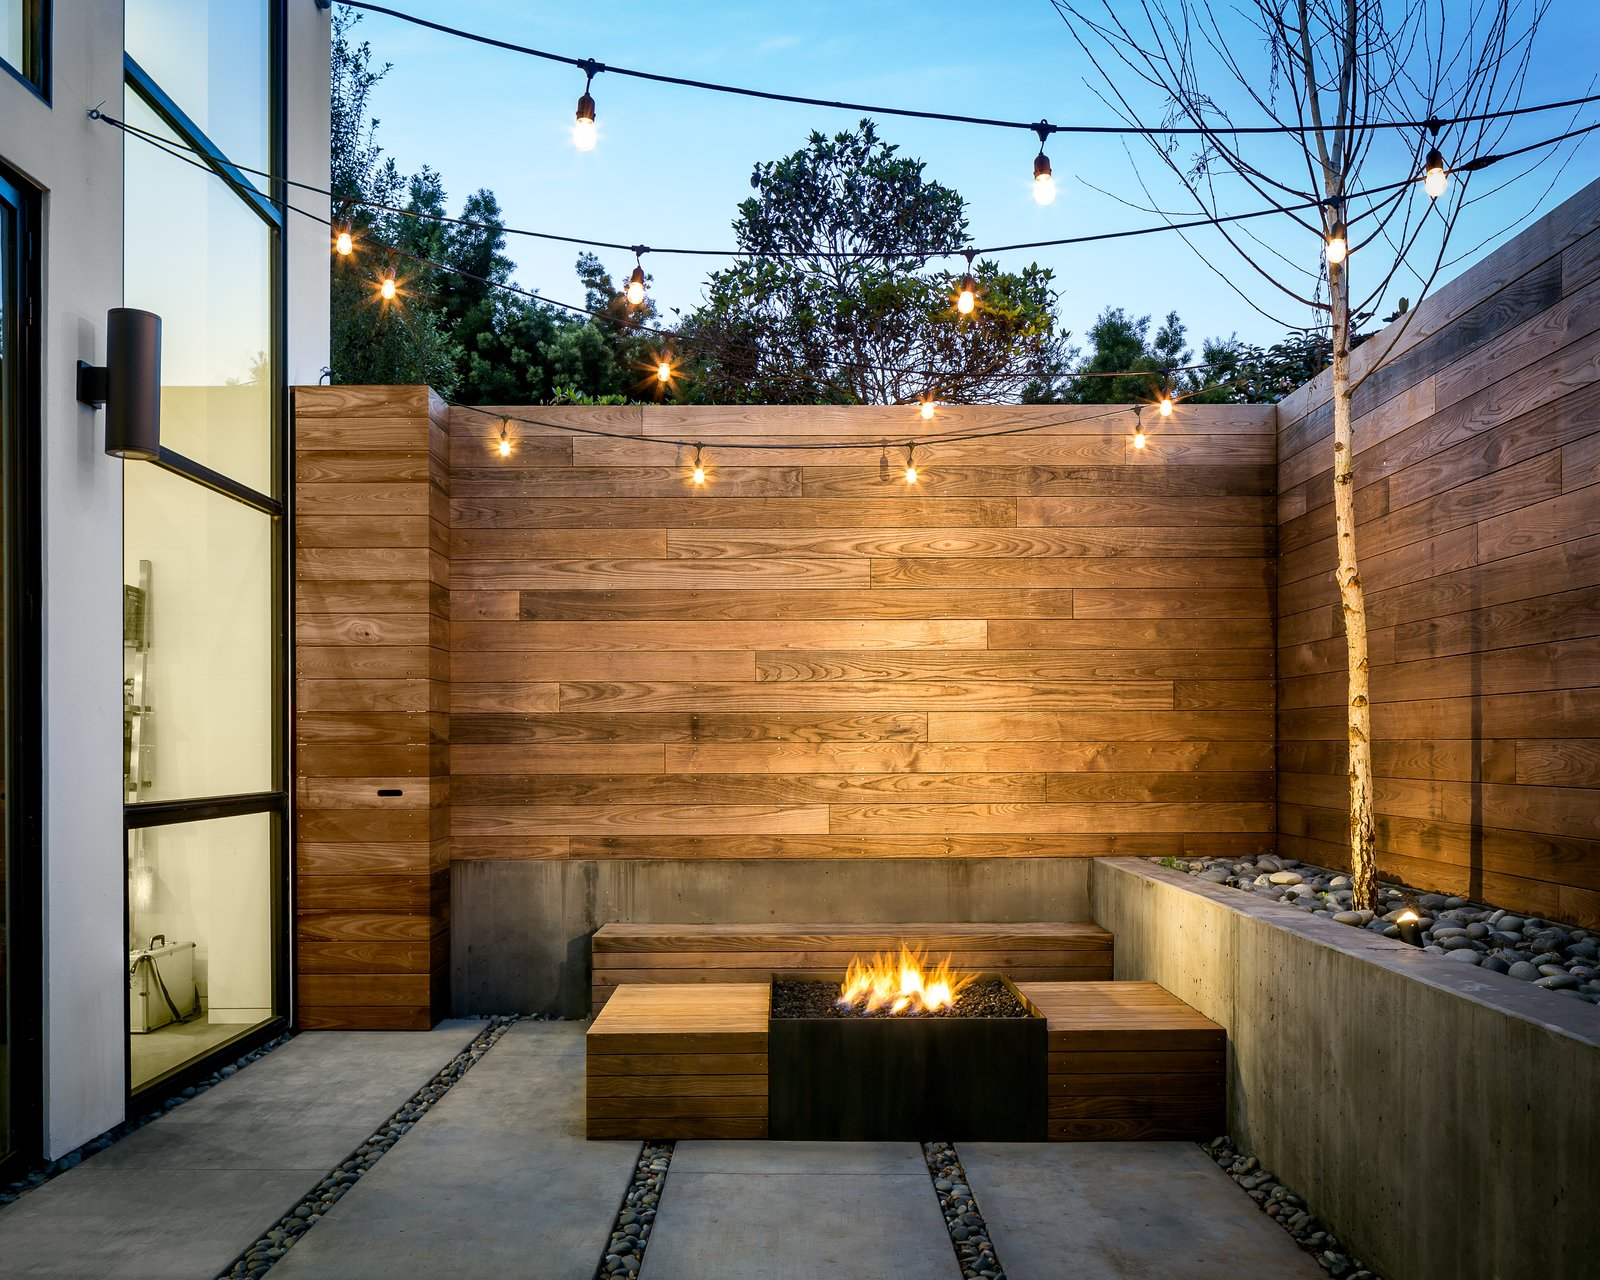 Outdoor, Small Patio, Porch, Deck, Walkways, Shrubs, Concrete Patio, Porch, Deck, Landscape Lighting, Hardscapes, Wood Fences, Wall, Raised Planters, Trees, Back Yard, and Hanging Lighting Back patio  Photo 17 of 19 in 18 Modern Fireplaces and Fire Pits to Inspire Outdoor Living from SF House-Tech-Art-Play